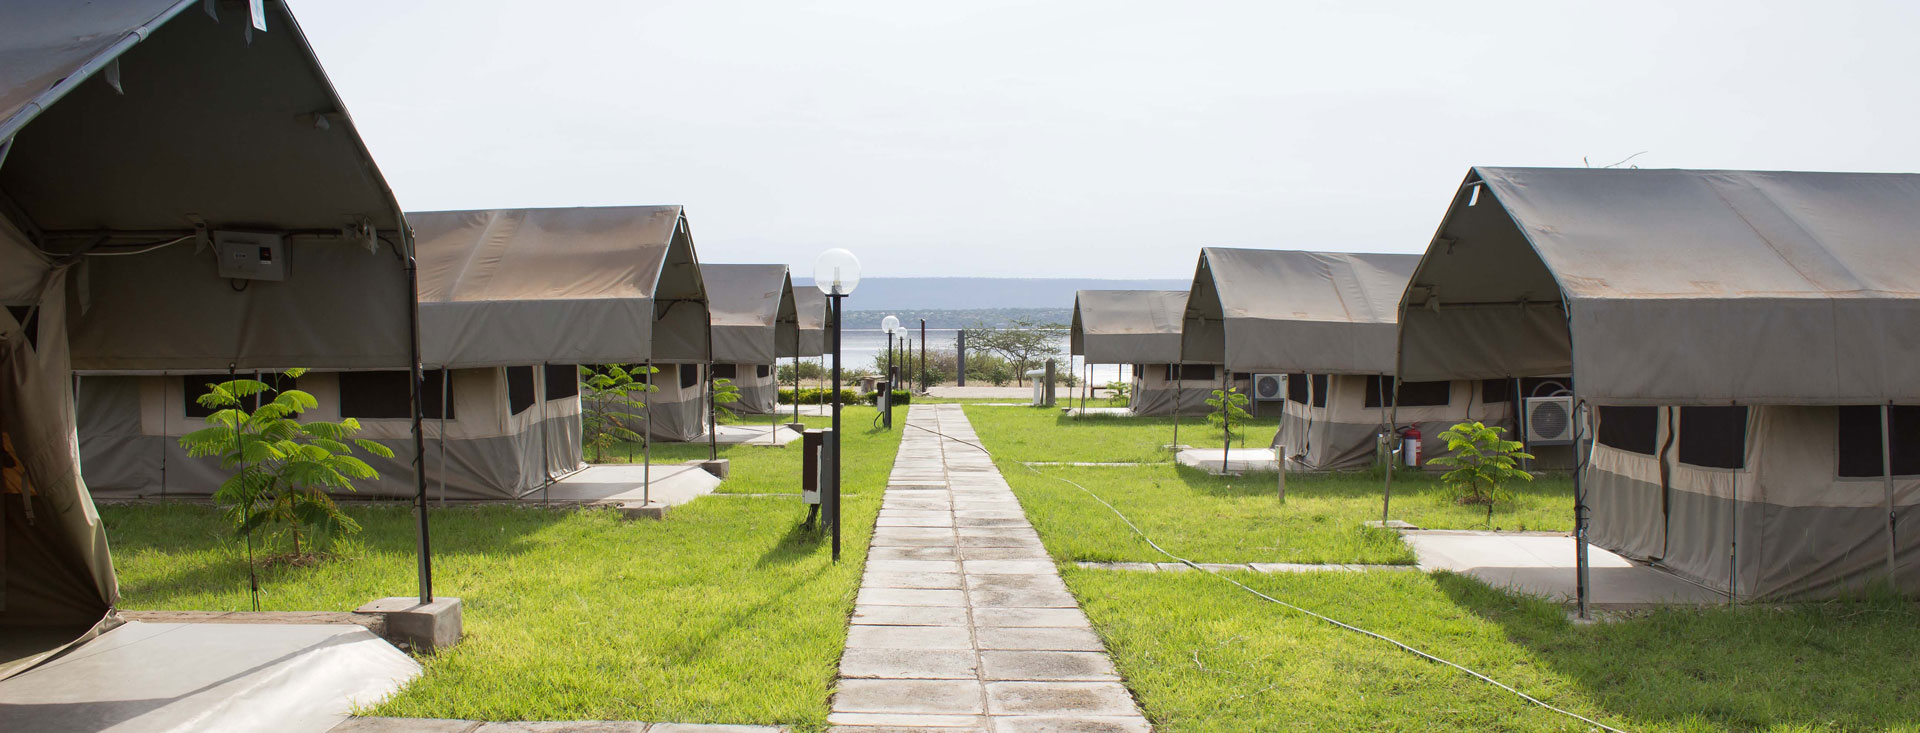 Lake Magadi Tented Camp